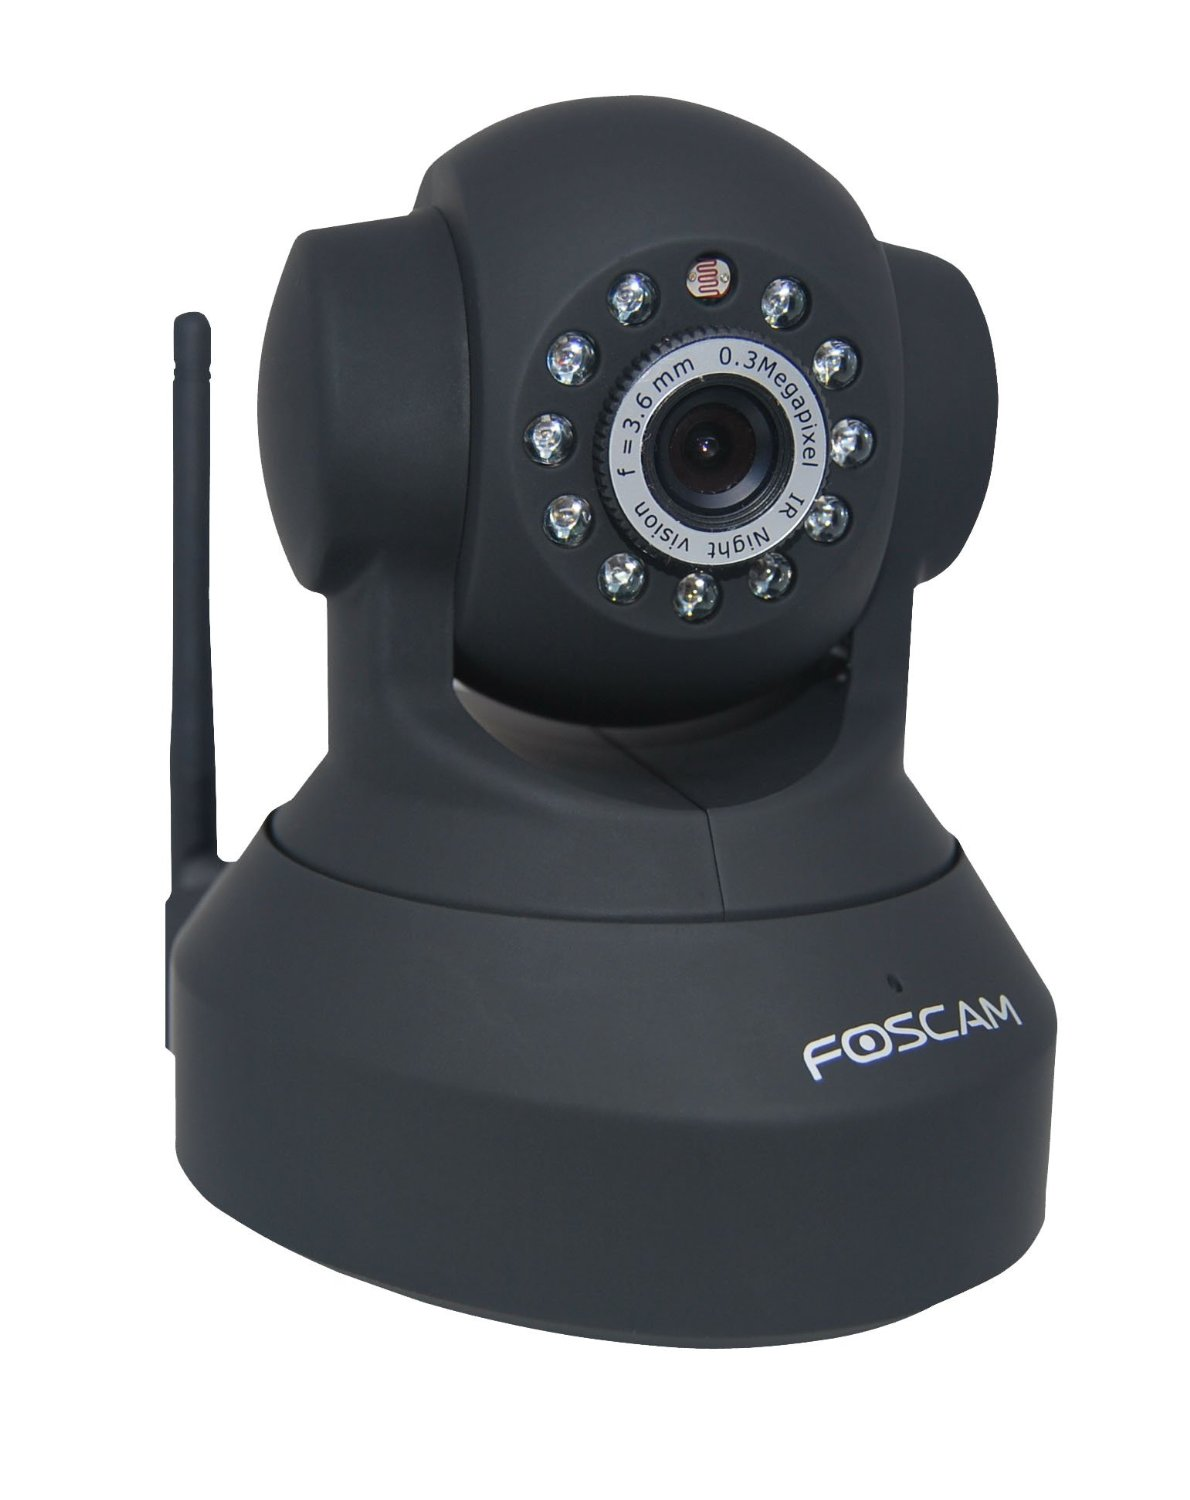 Foscam Wireless Security Systems